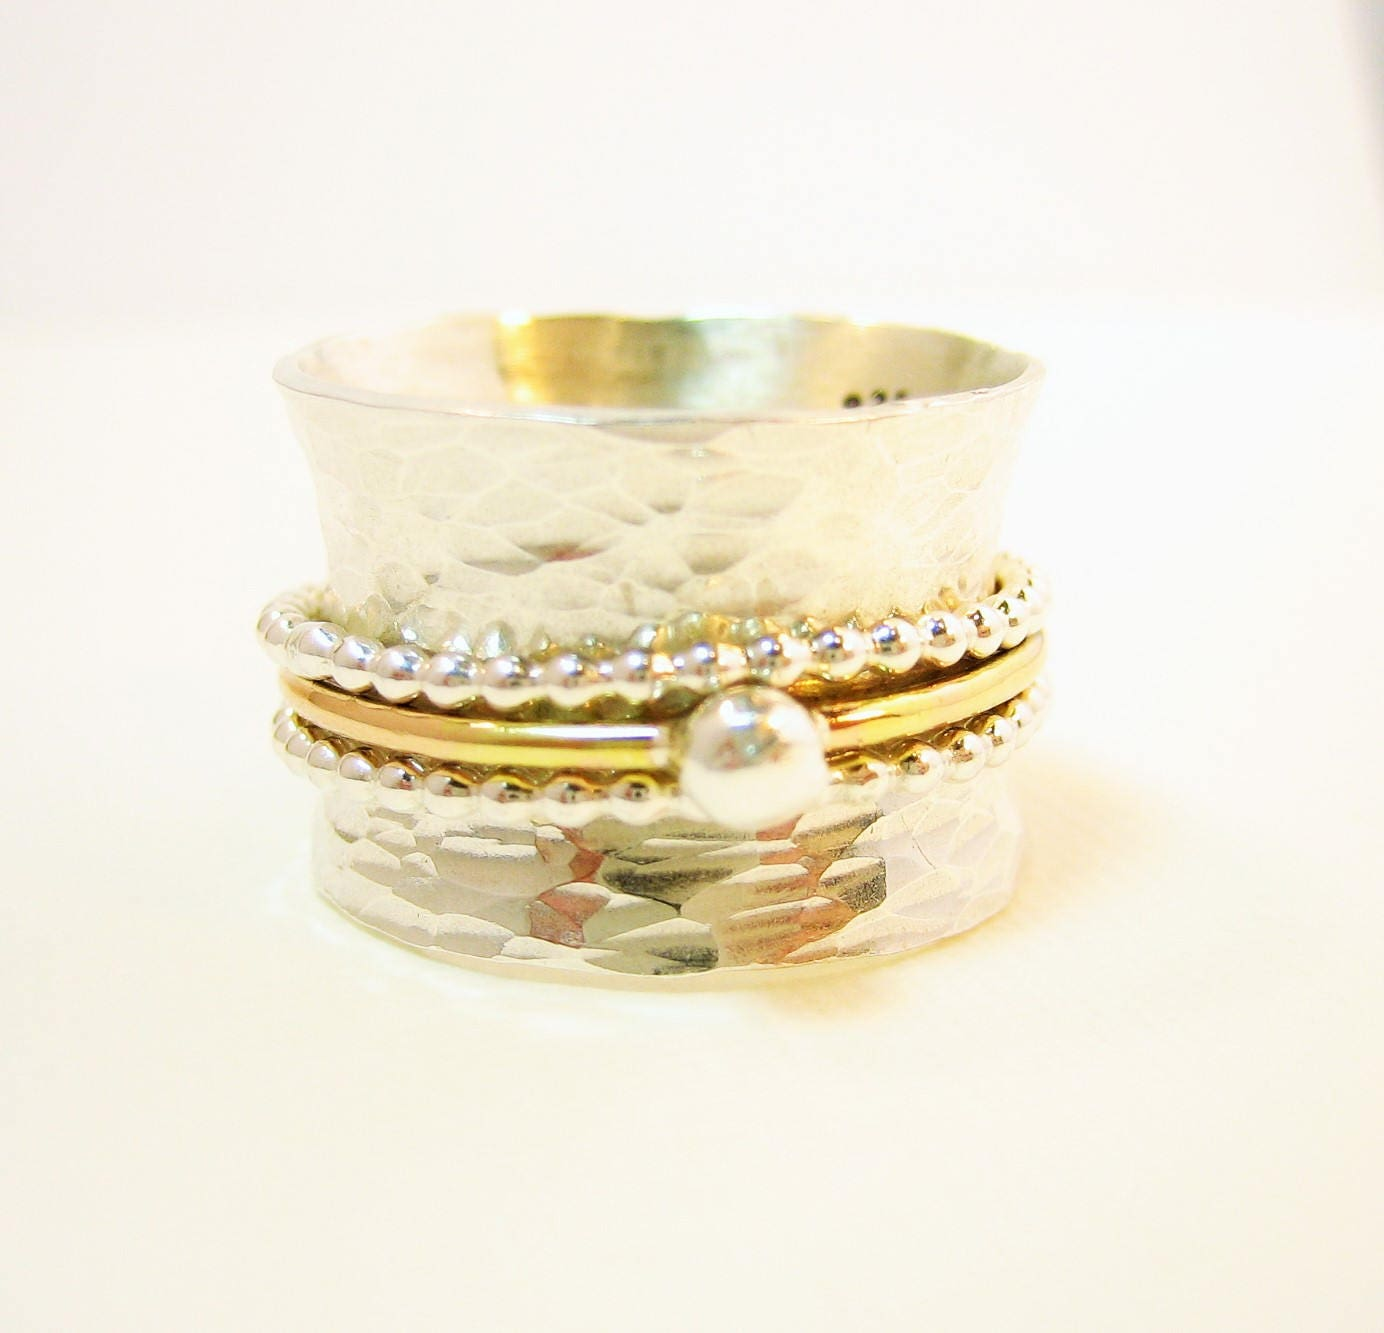 Hammered silver spinner ring, sterling silver and gold spinner ring, artisan made two toned silver ring, one-of-a-kind textured ring